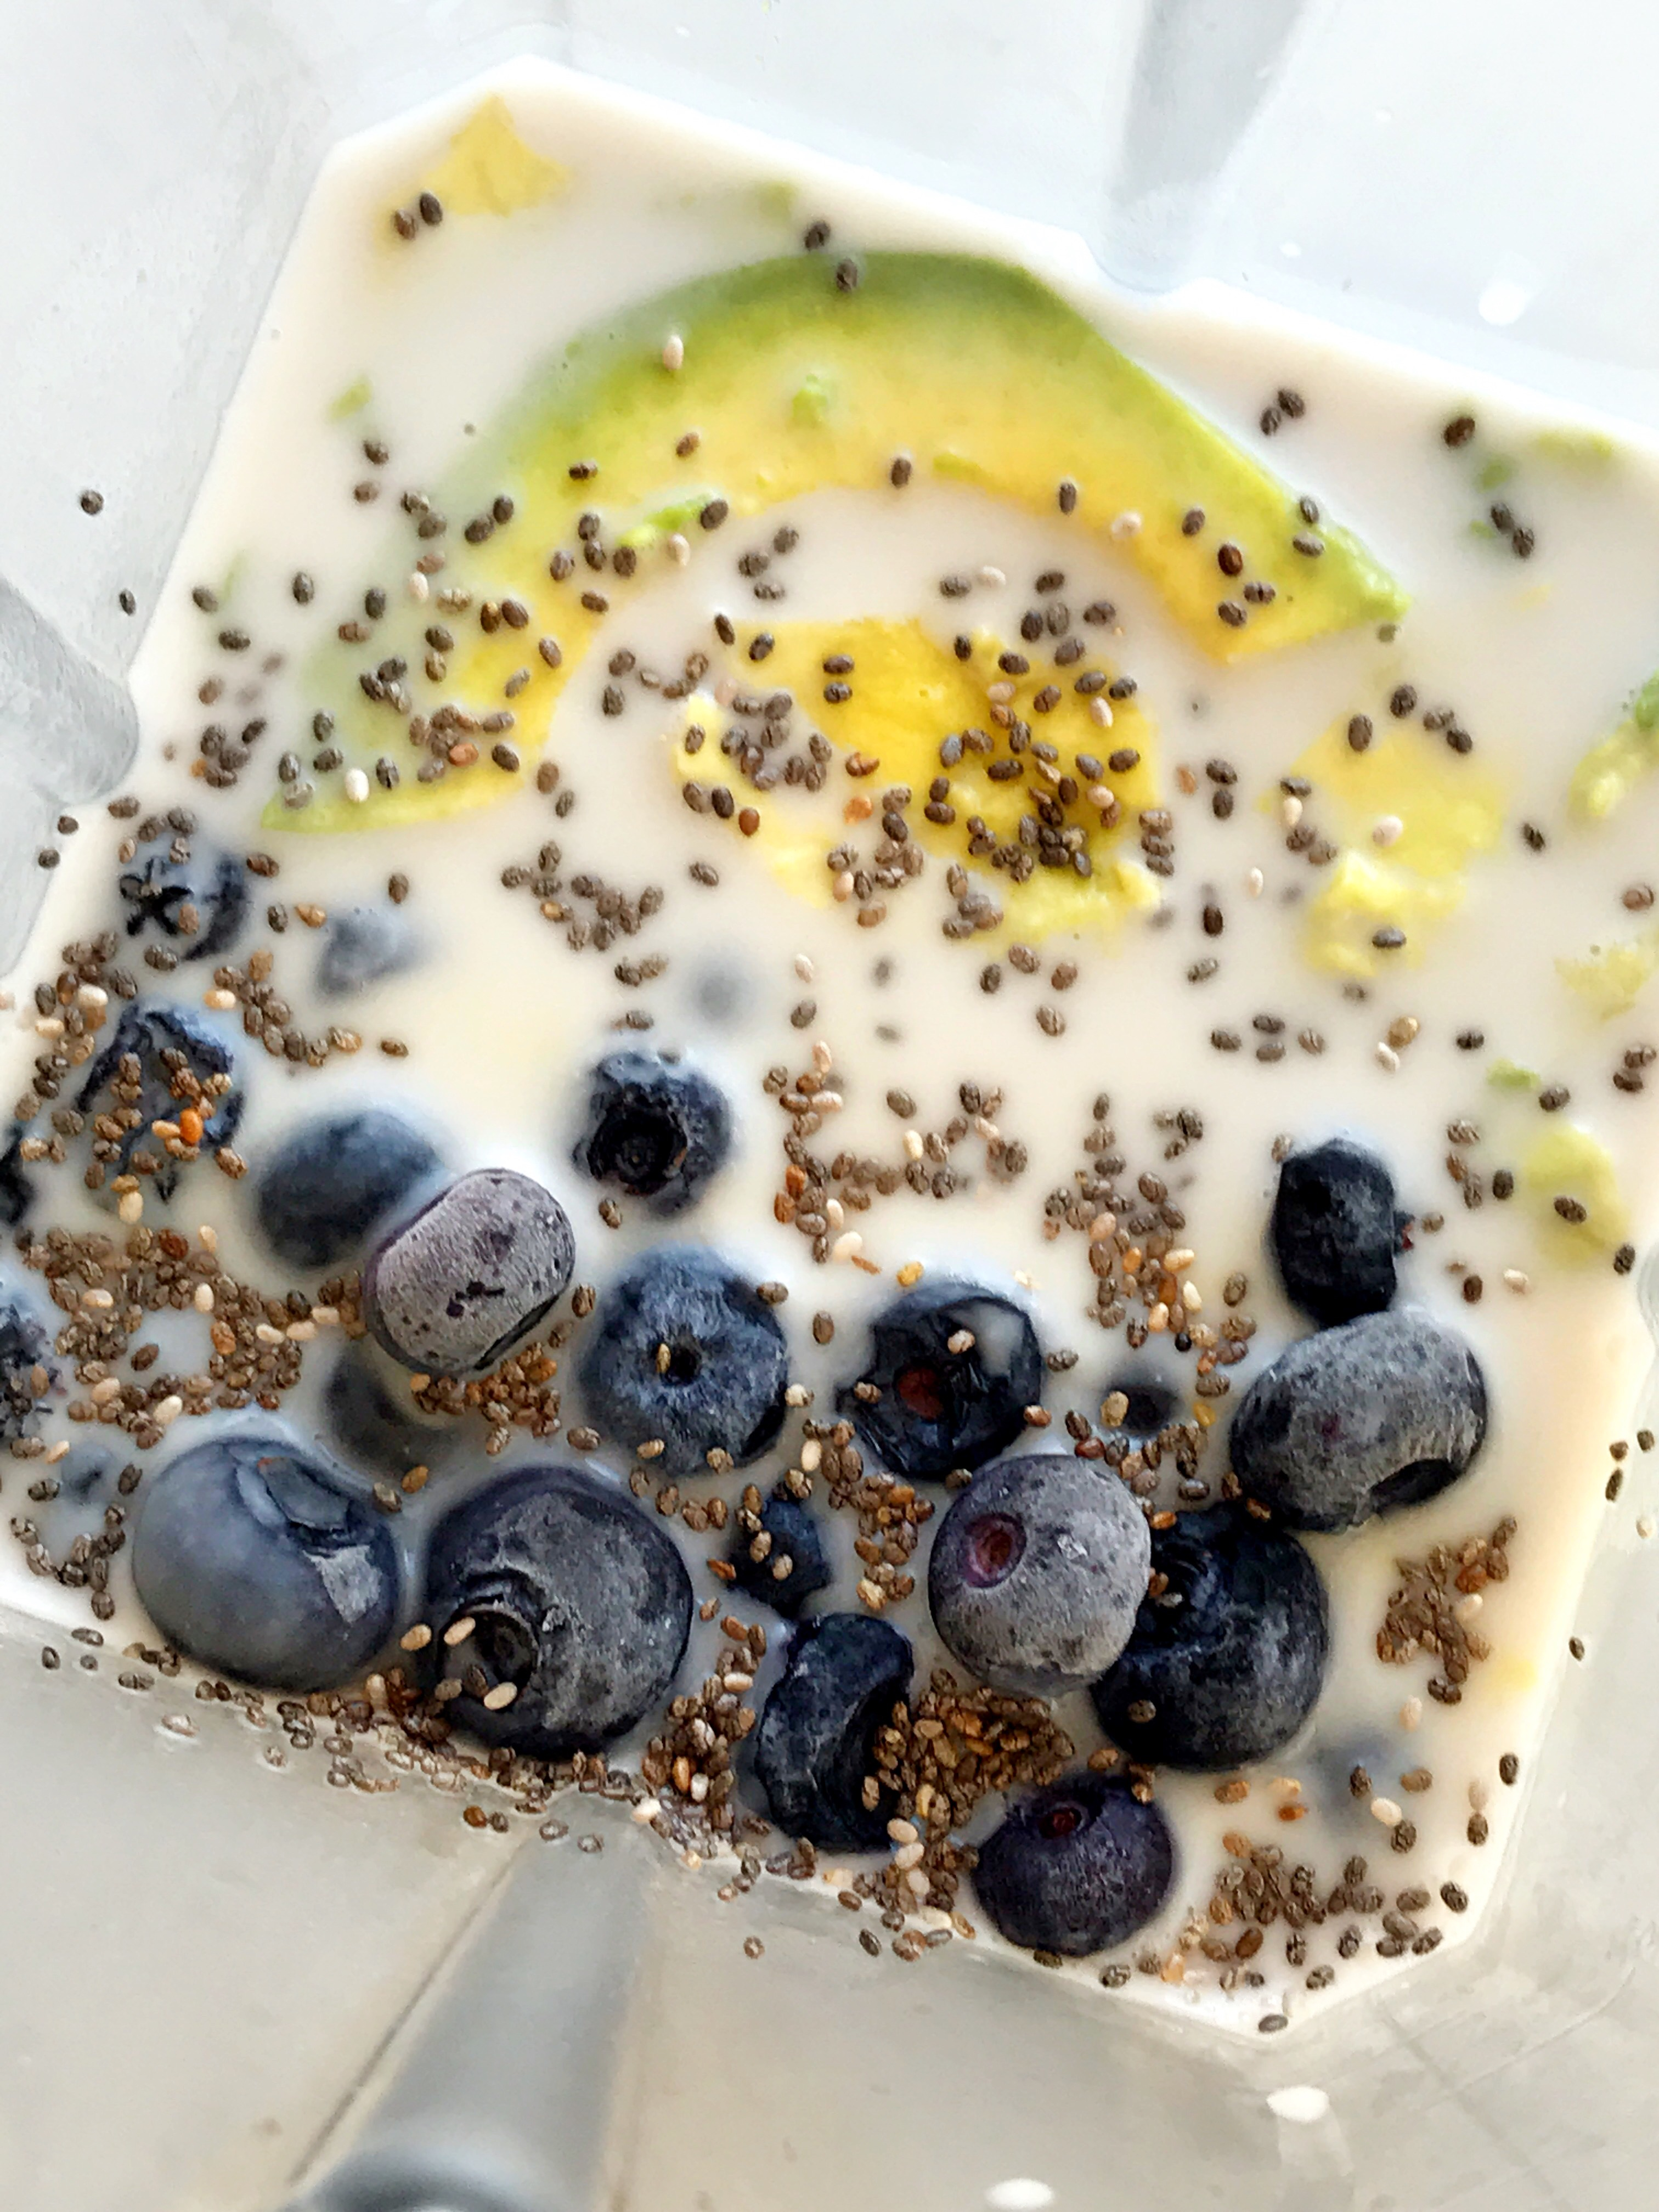 Healthy yogurt with blueberry and chia seeds